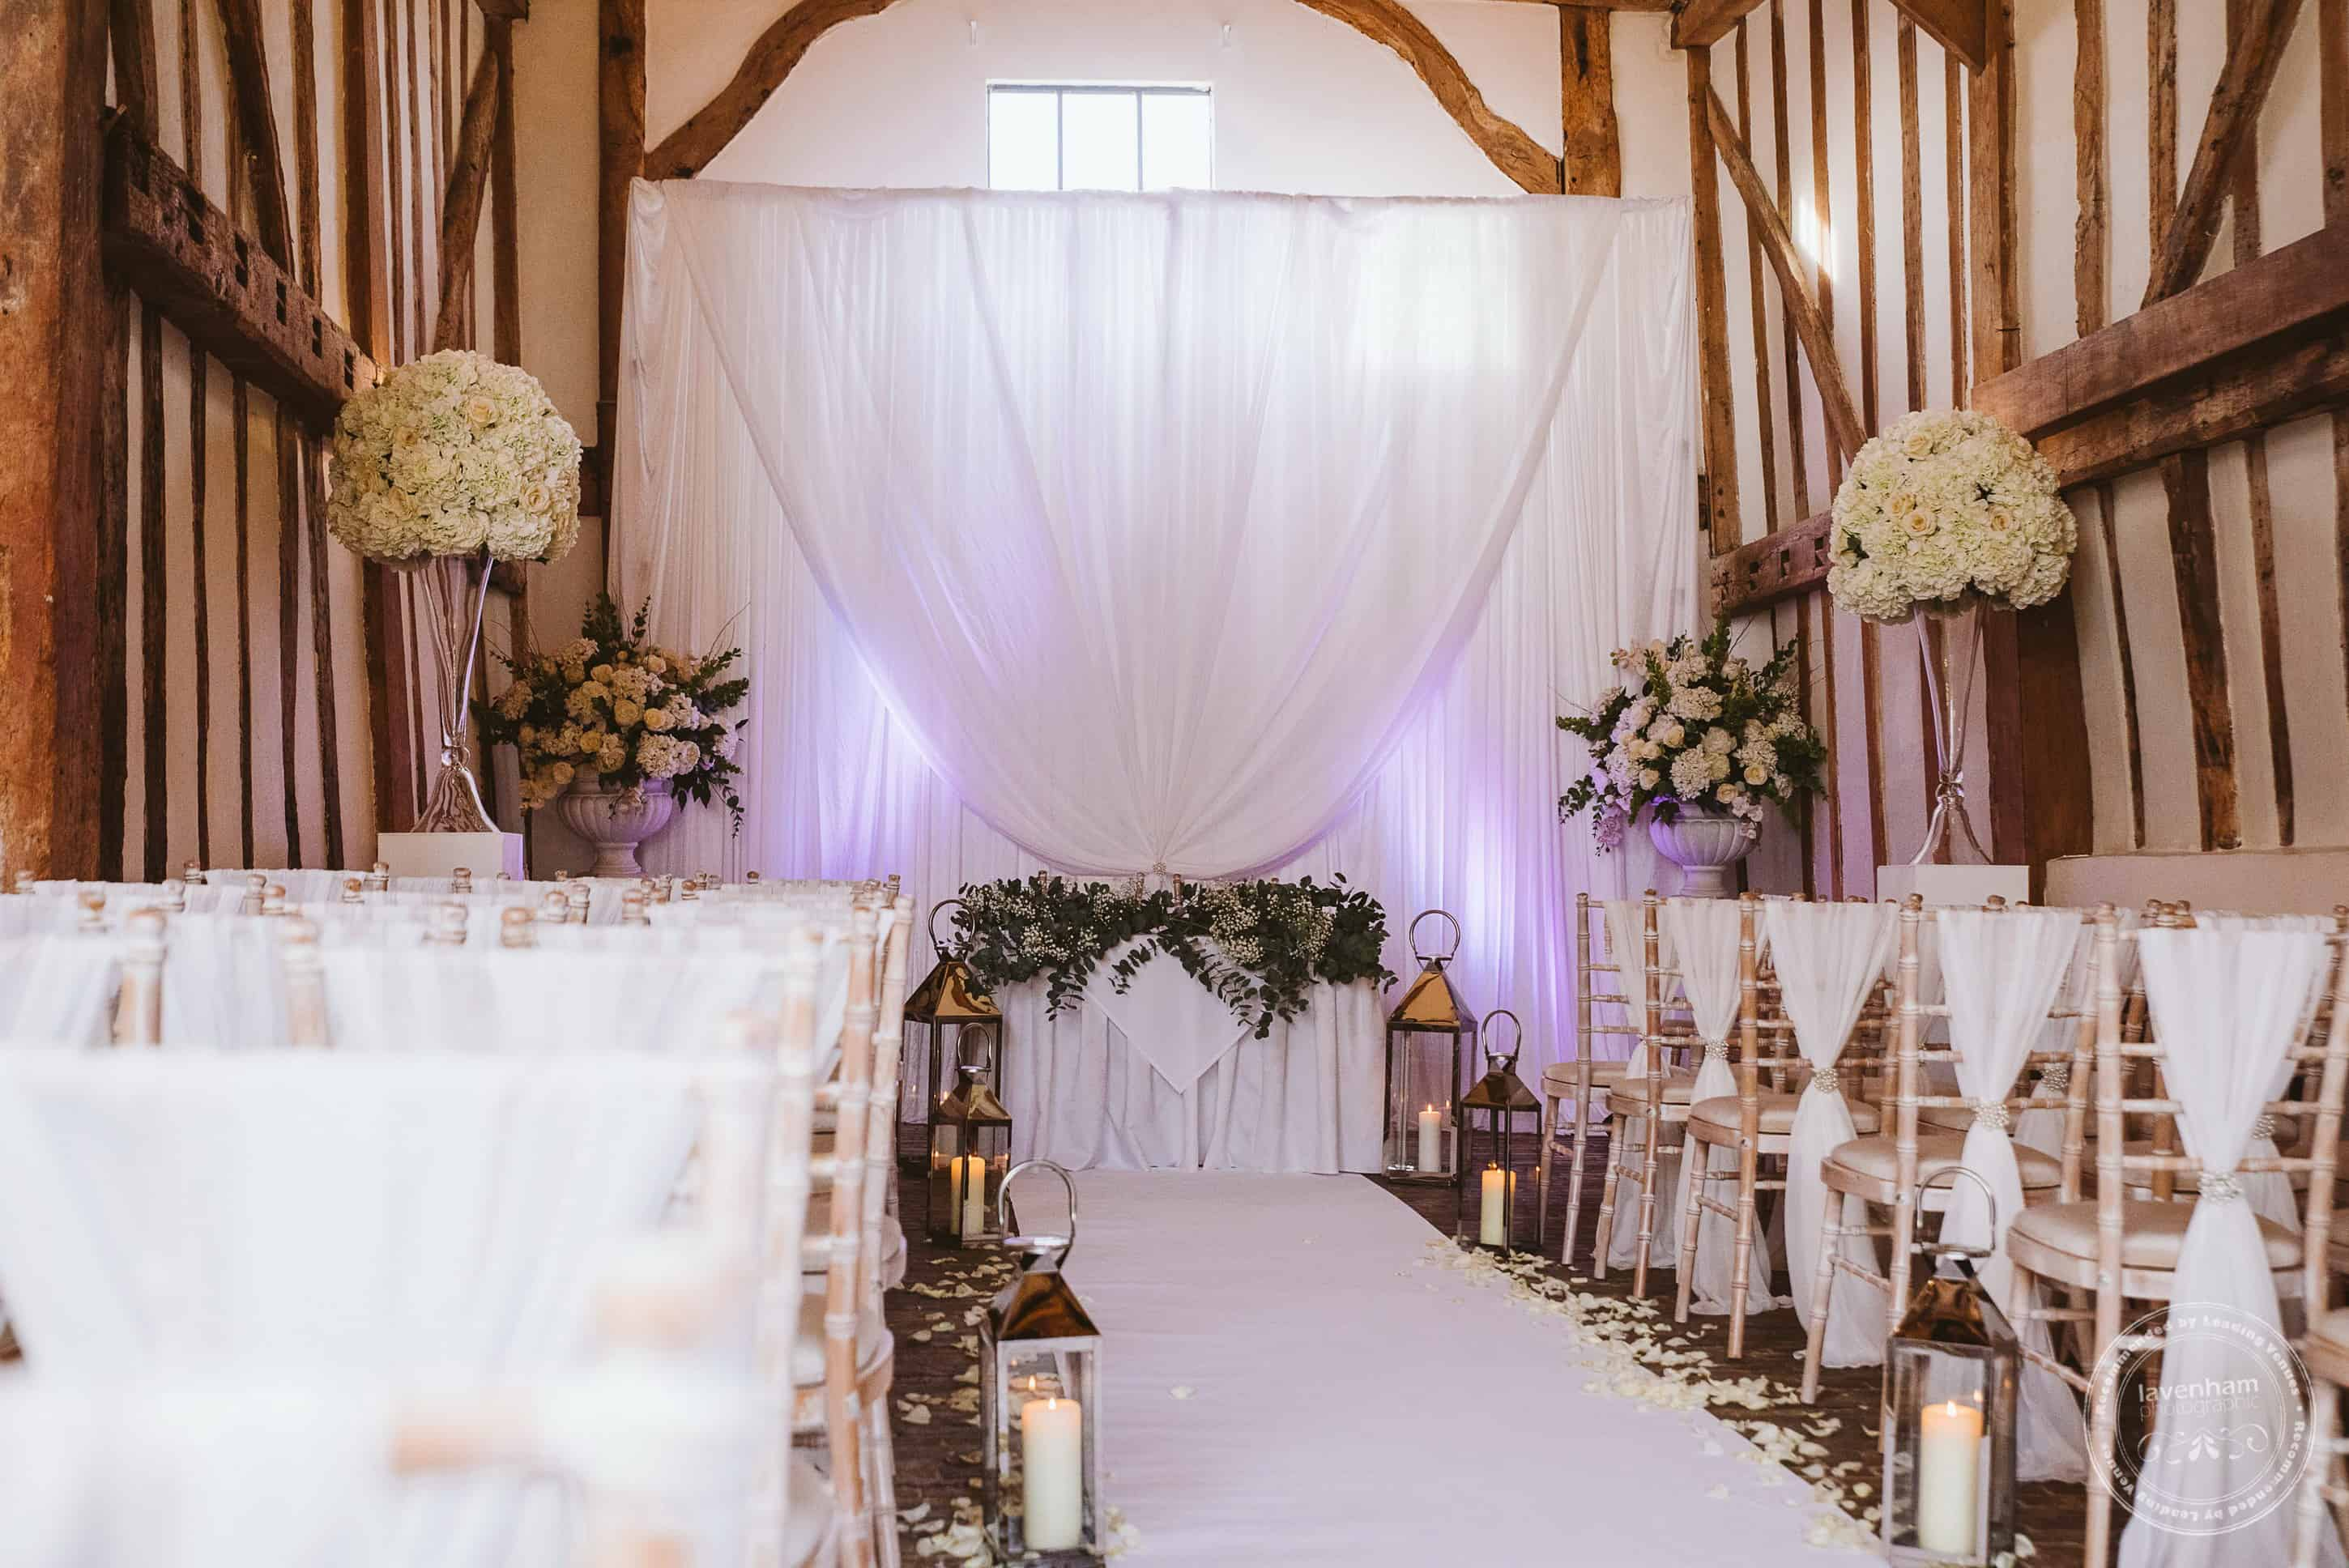 221219 Leez Priory Wedding Photoraphy 031